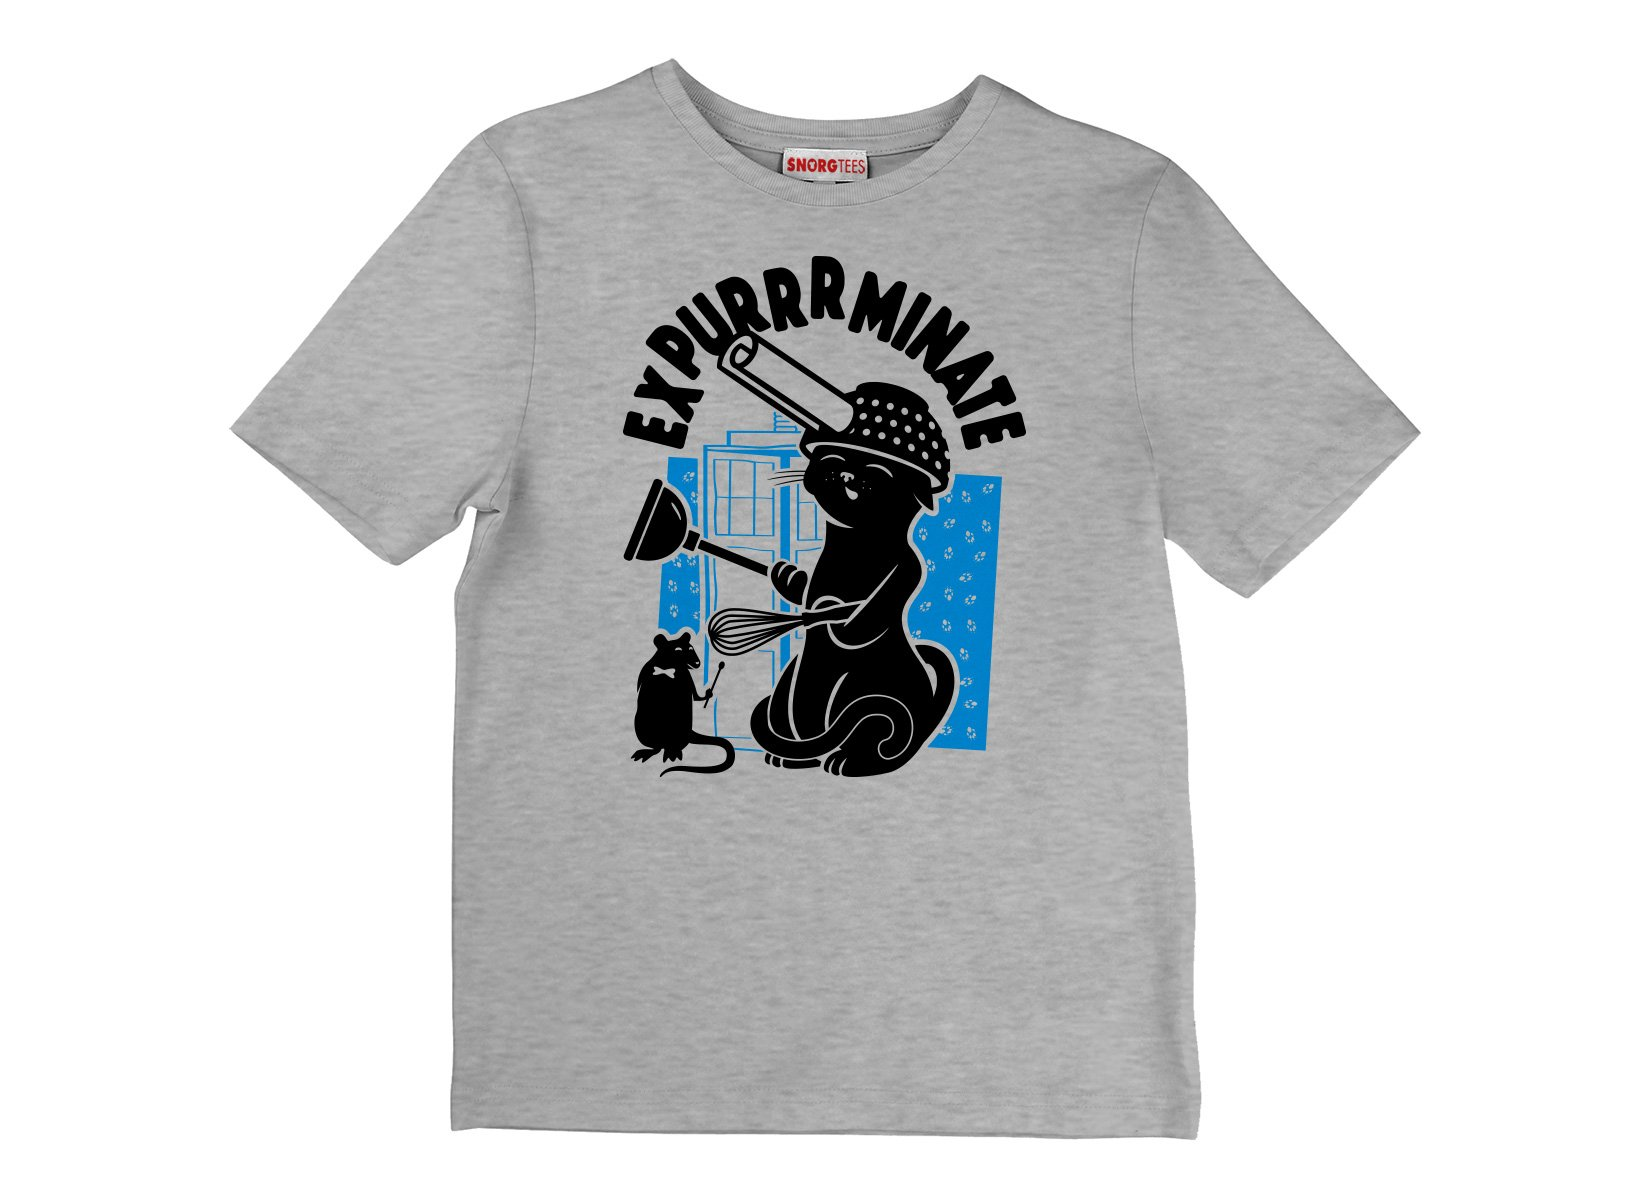 Expurrrminate on Kids T-Shirt